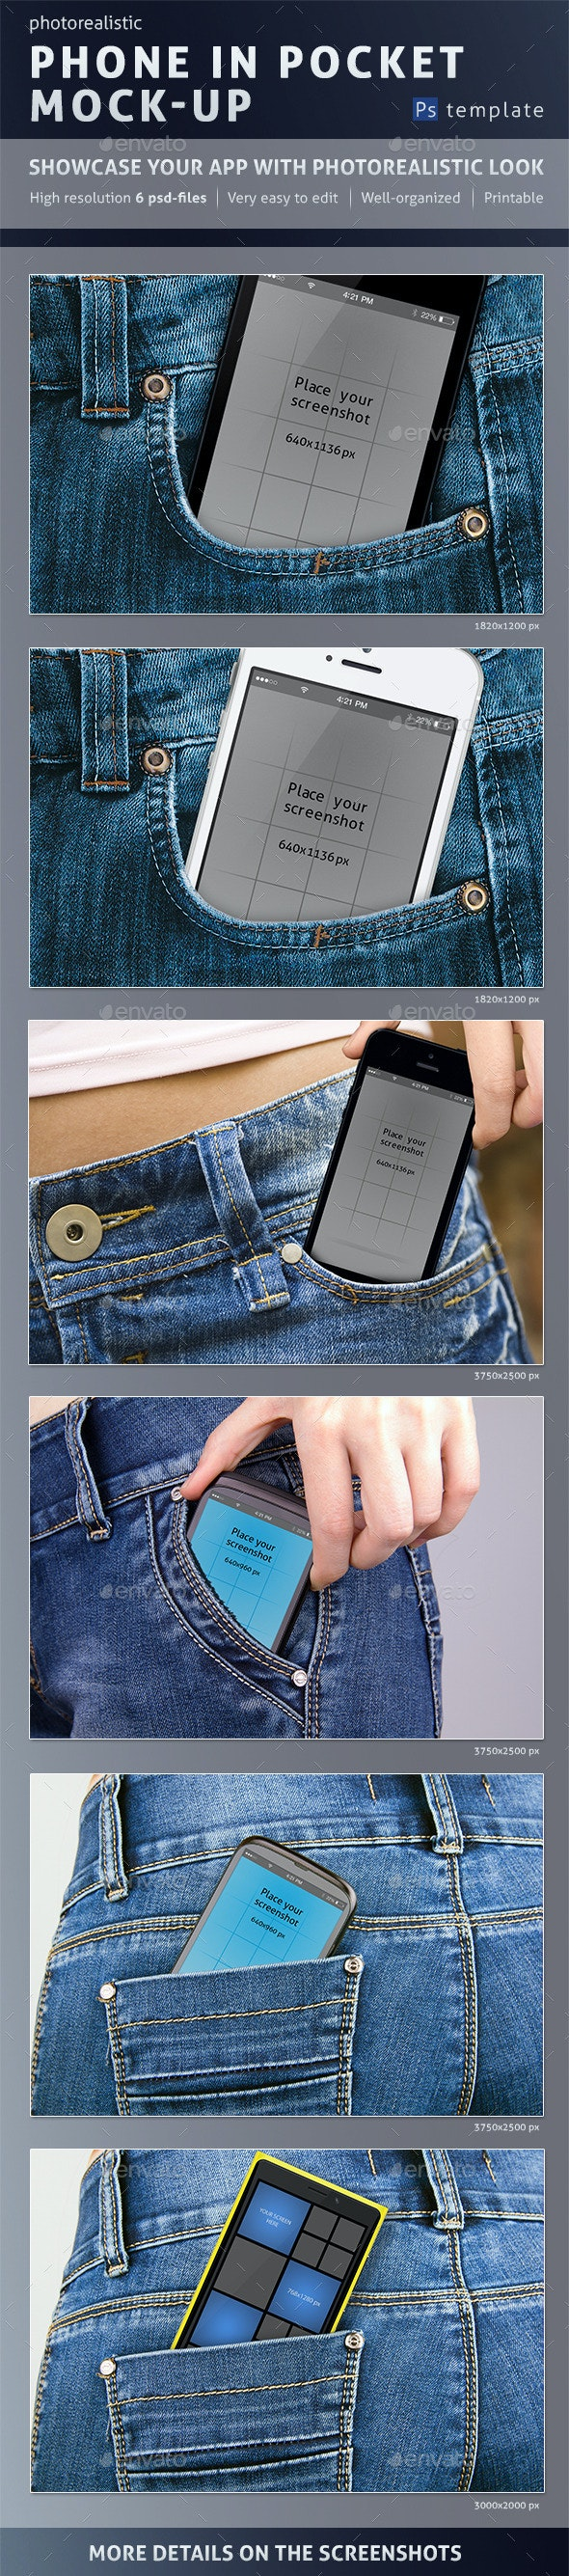 Photorealistic Phone in Pocket Mock-up - Mobile Displays